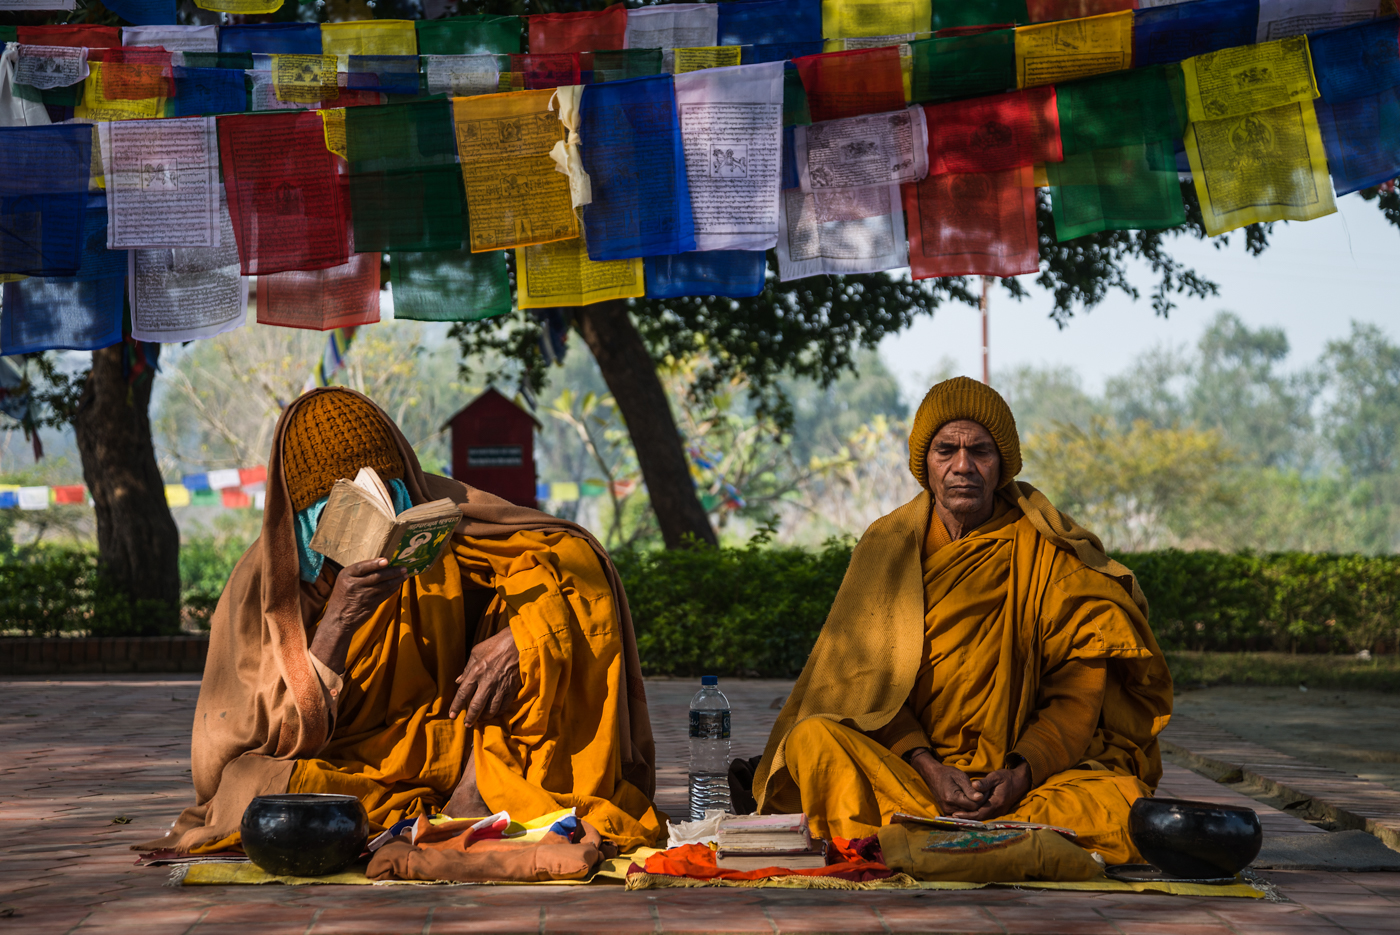 Many thousands make the pilgramage to the birthplace of Bhudda in Nepal every year.  These monks sit in the sacred garden there, in study and reflection.